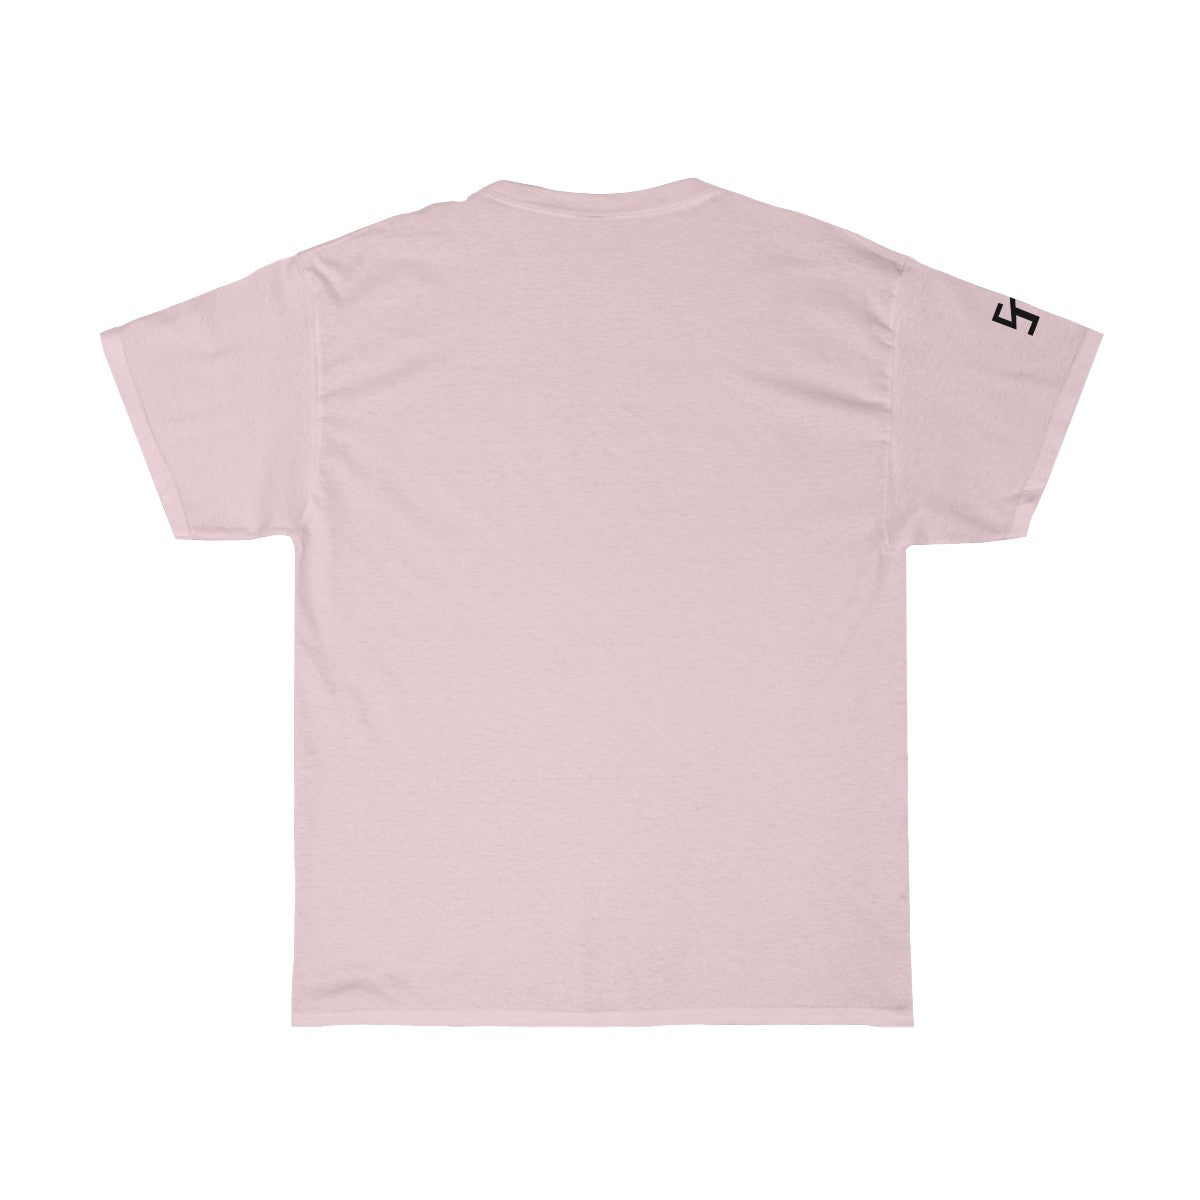 Elly Elz Ace of Spades Cotton Tee